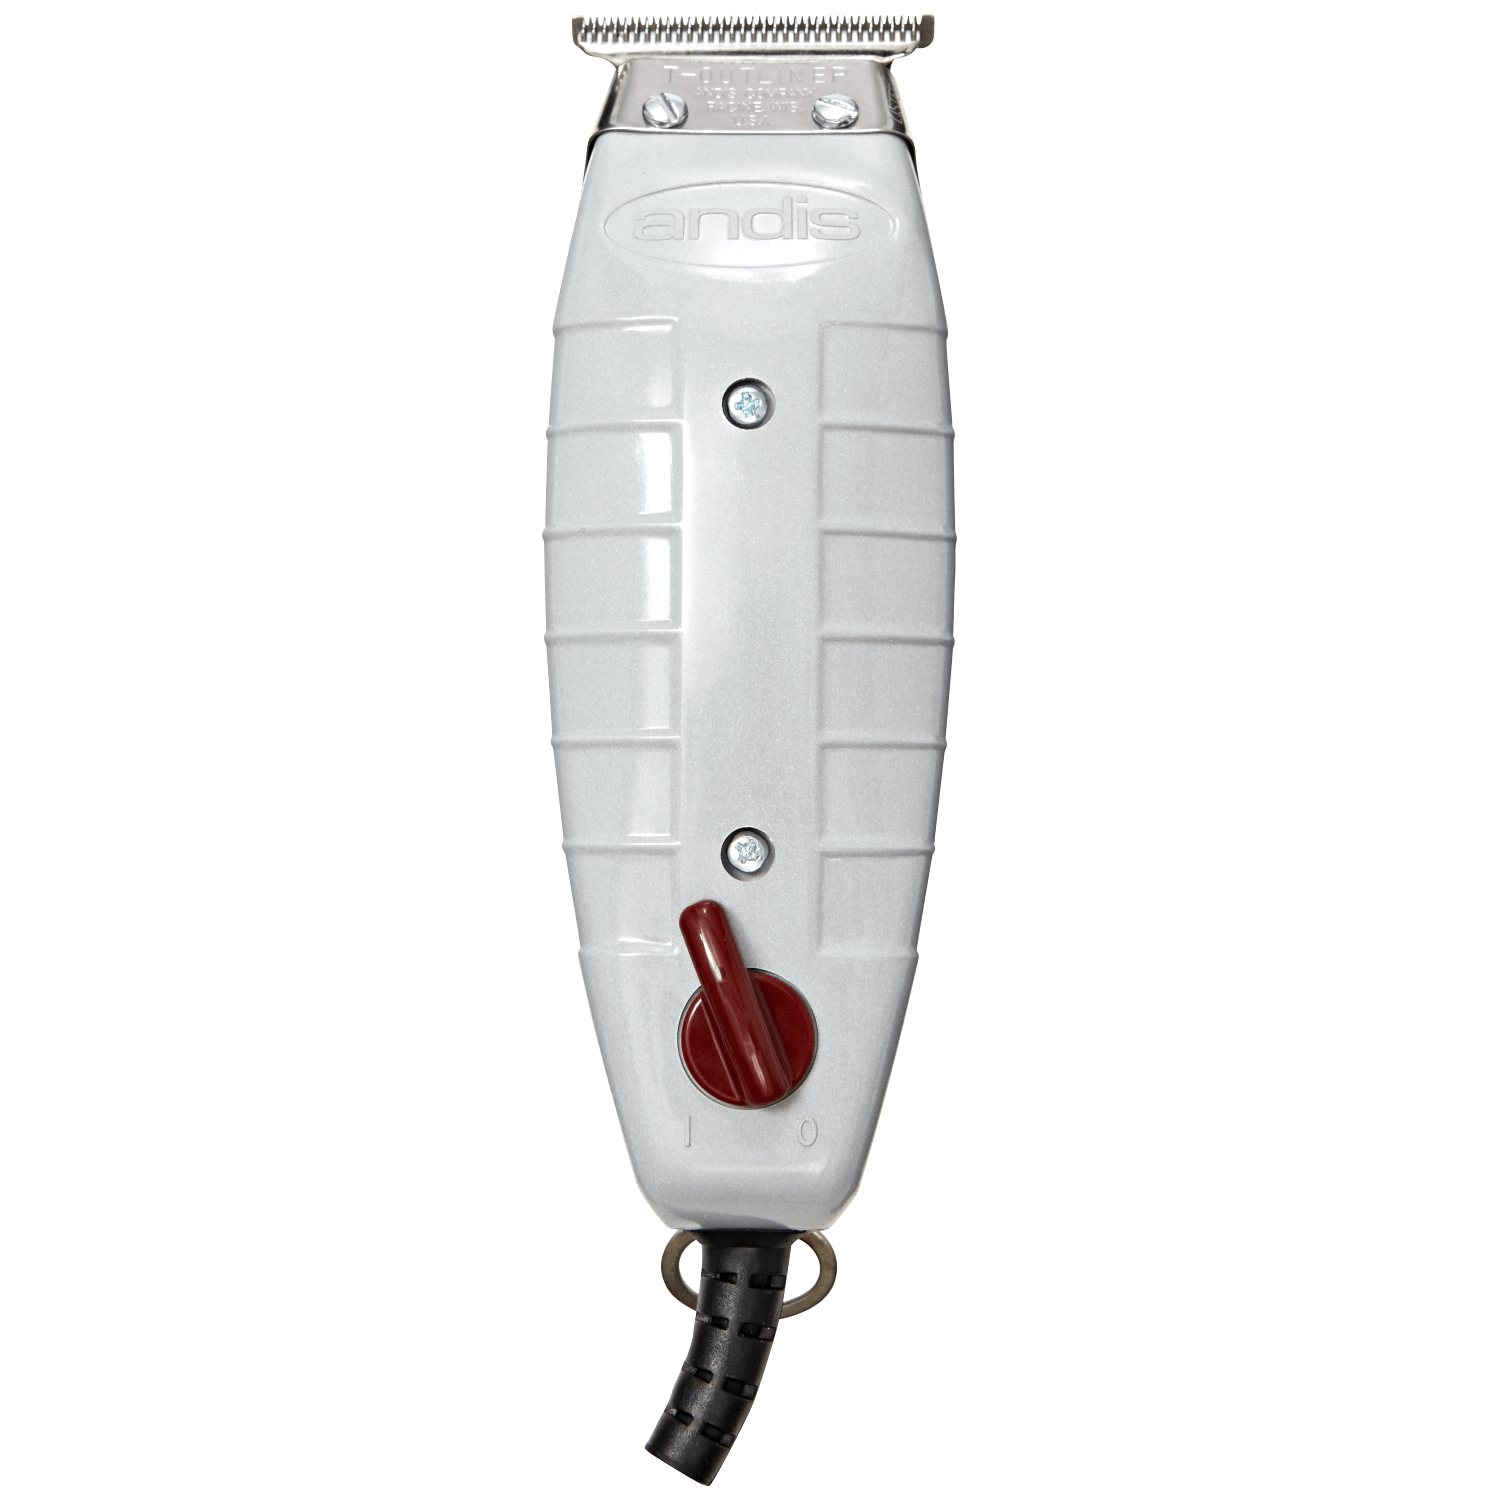 T-Outliner T-Blade Trimmer by Andis | Hair Clippers ...